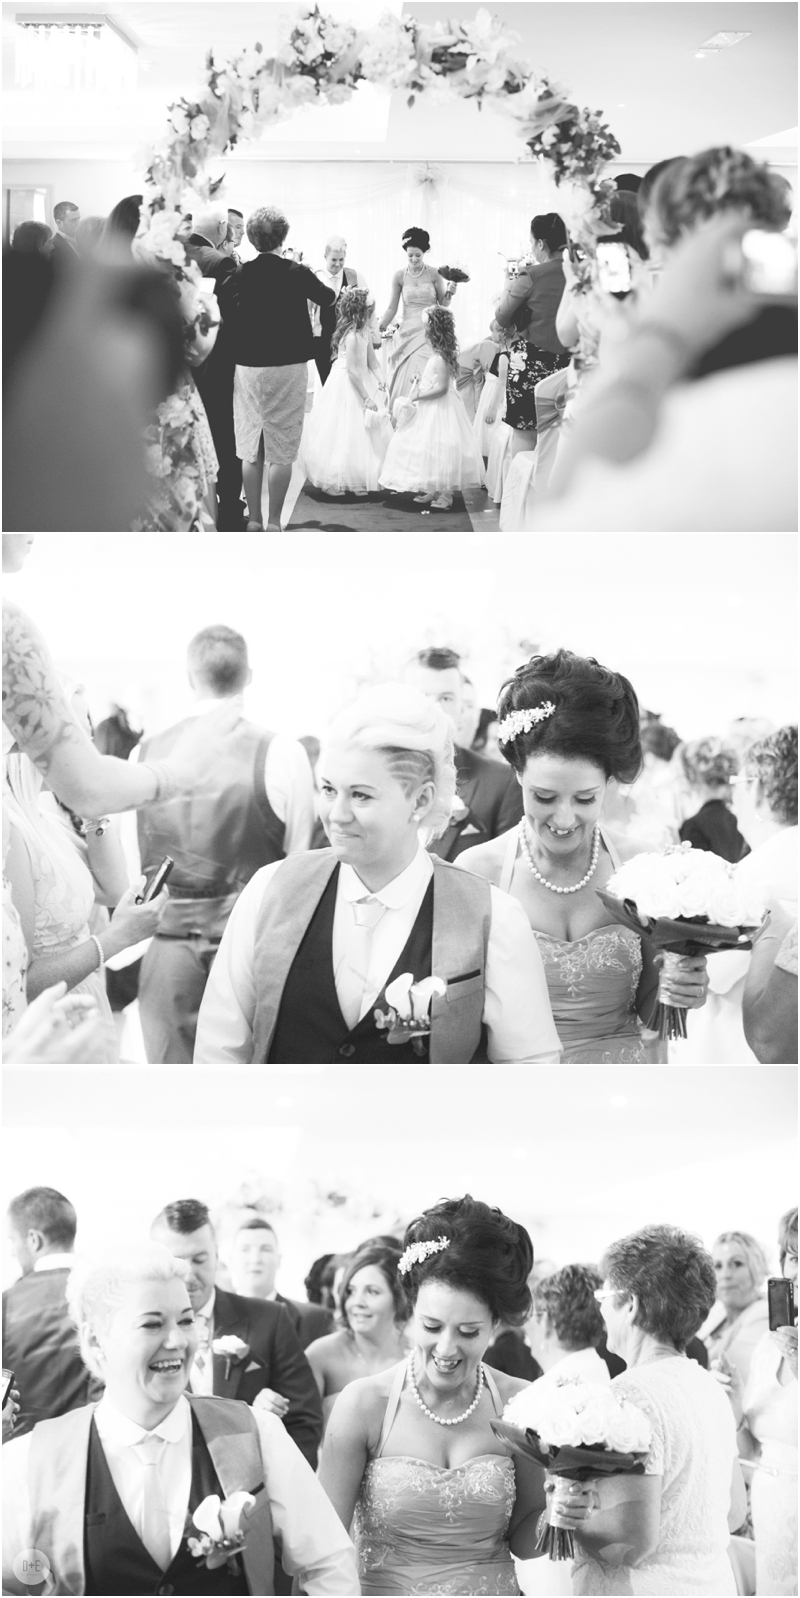 deanella.com-aisling+mary-wedding-115.jpg